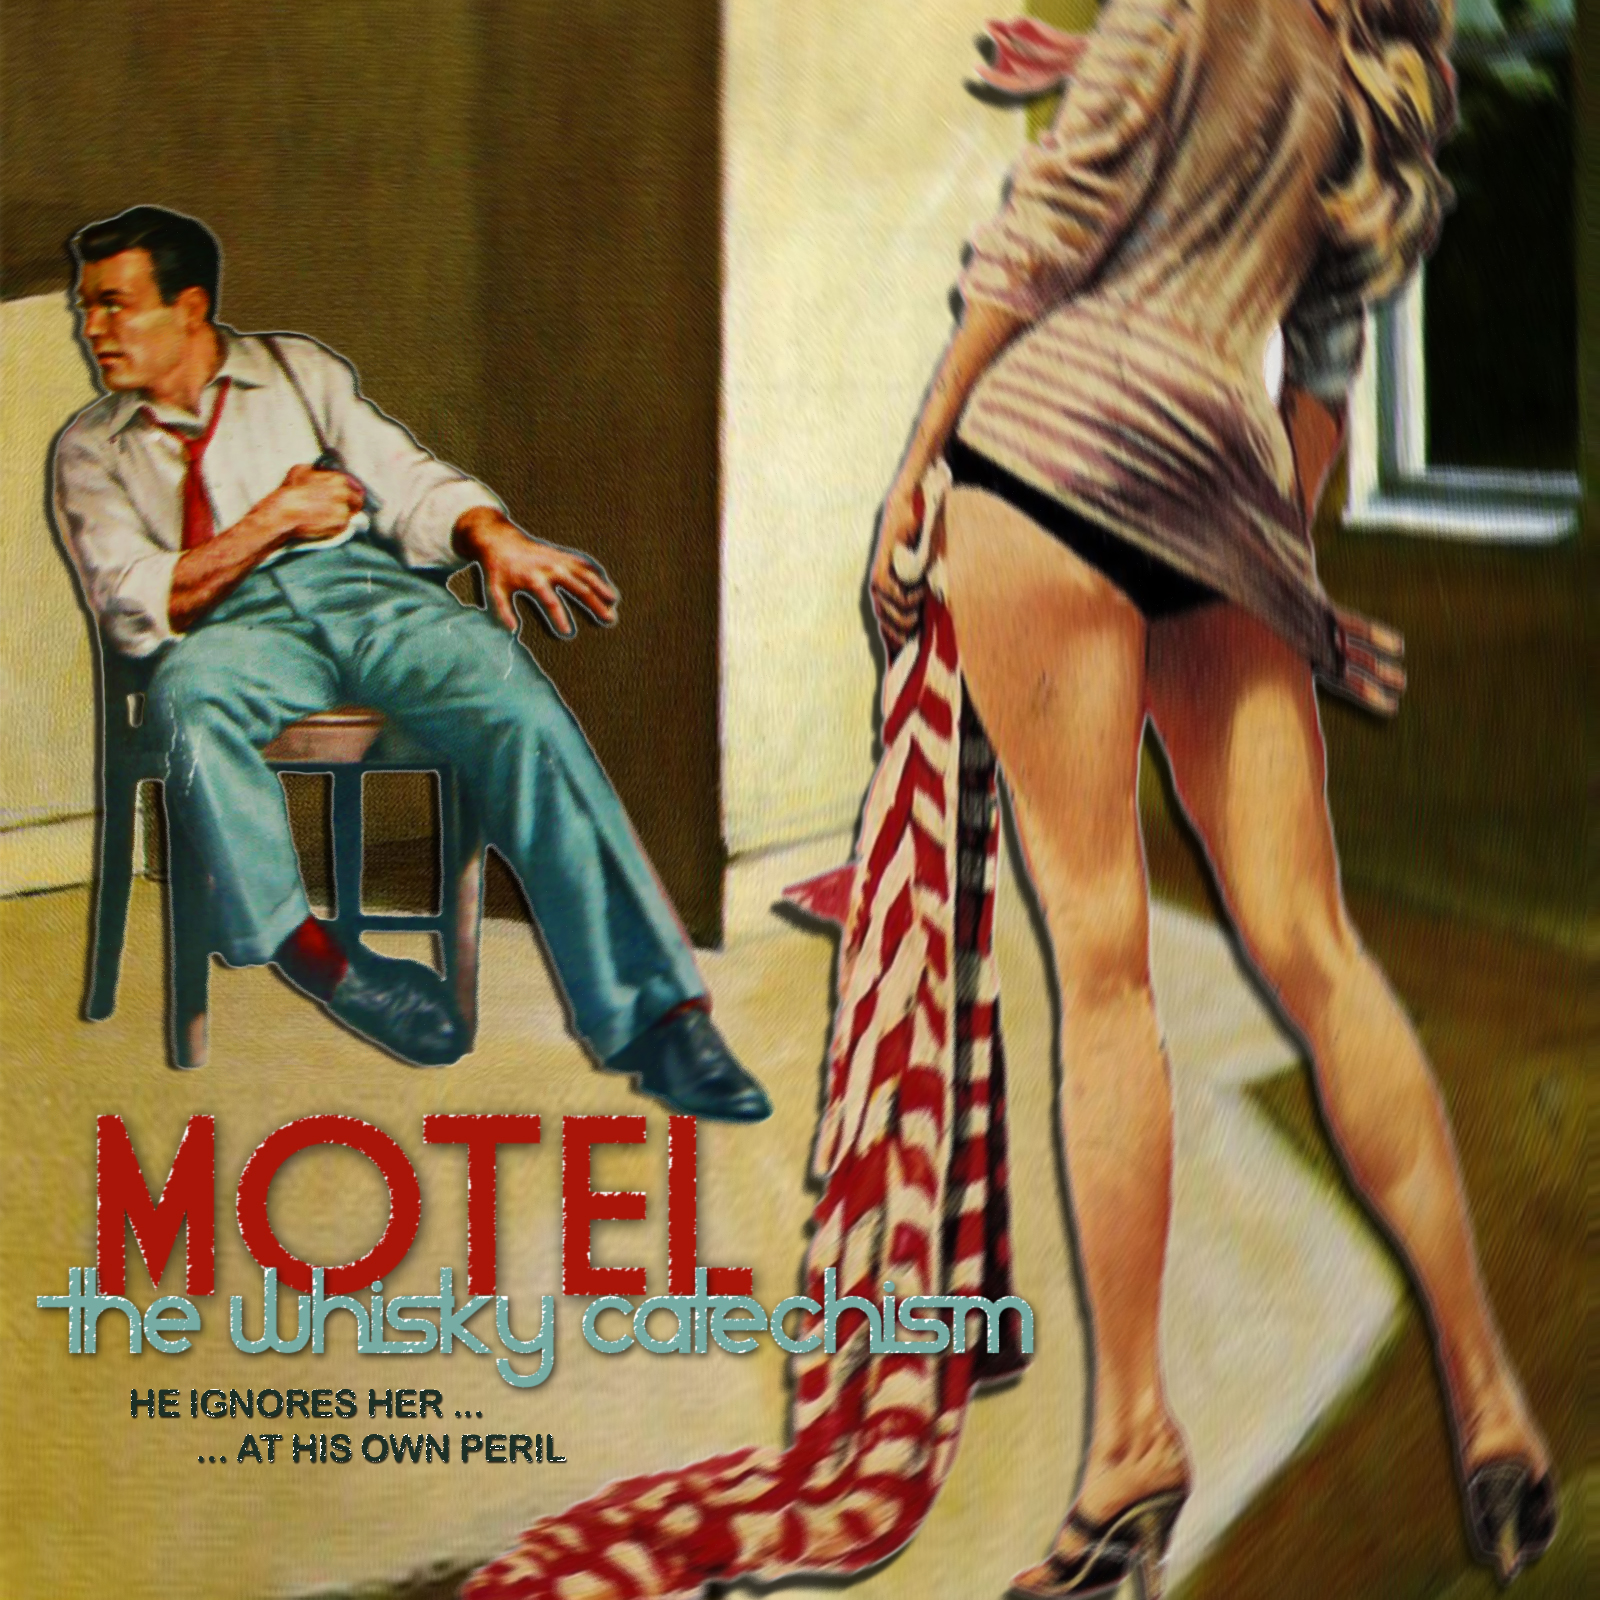 Motel: The Whisky Catechism by Tom Fahy